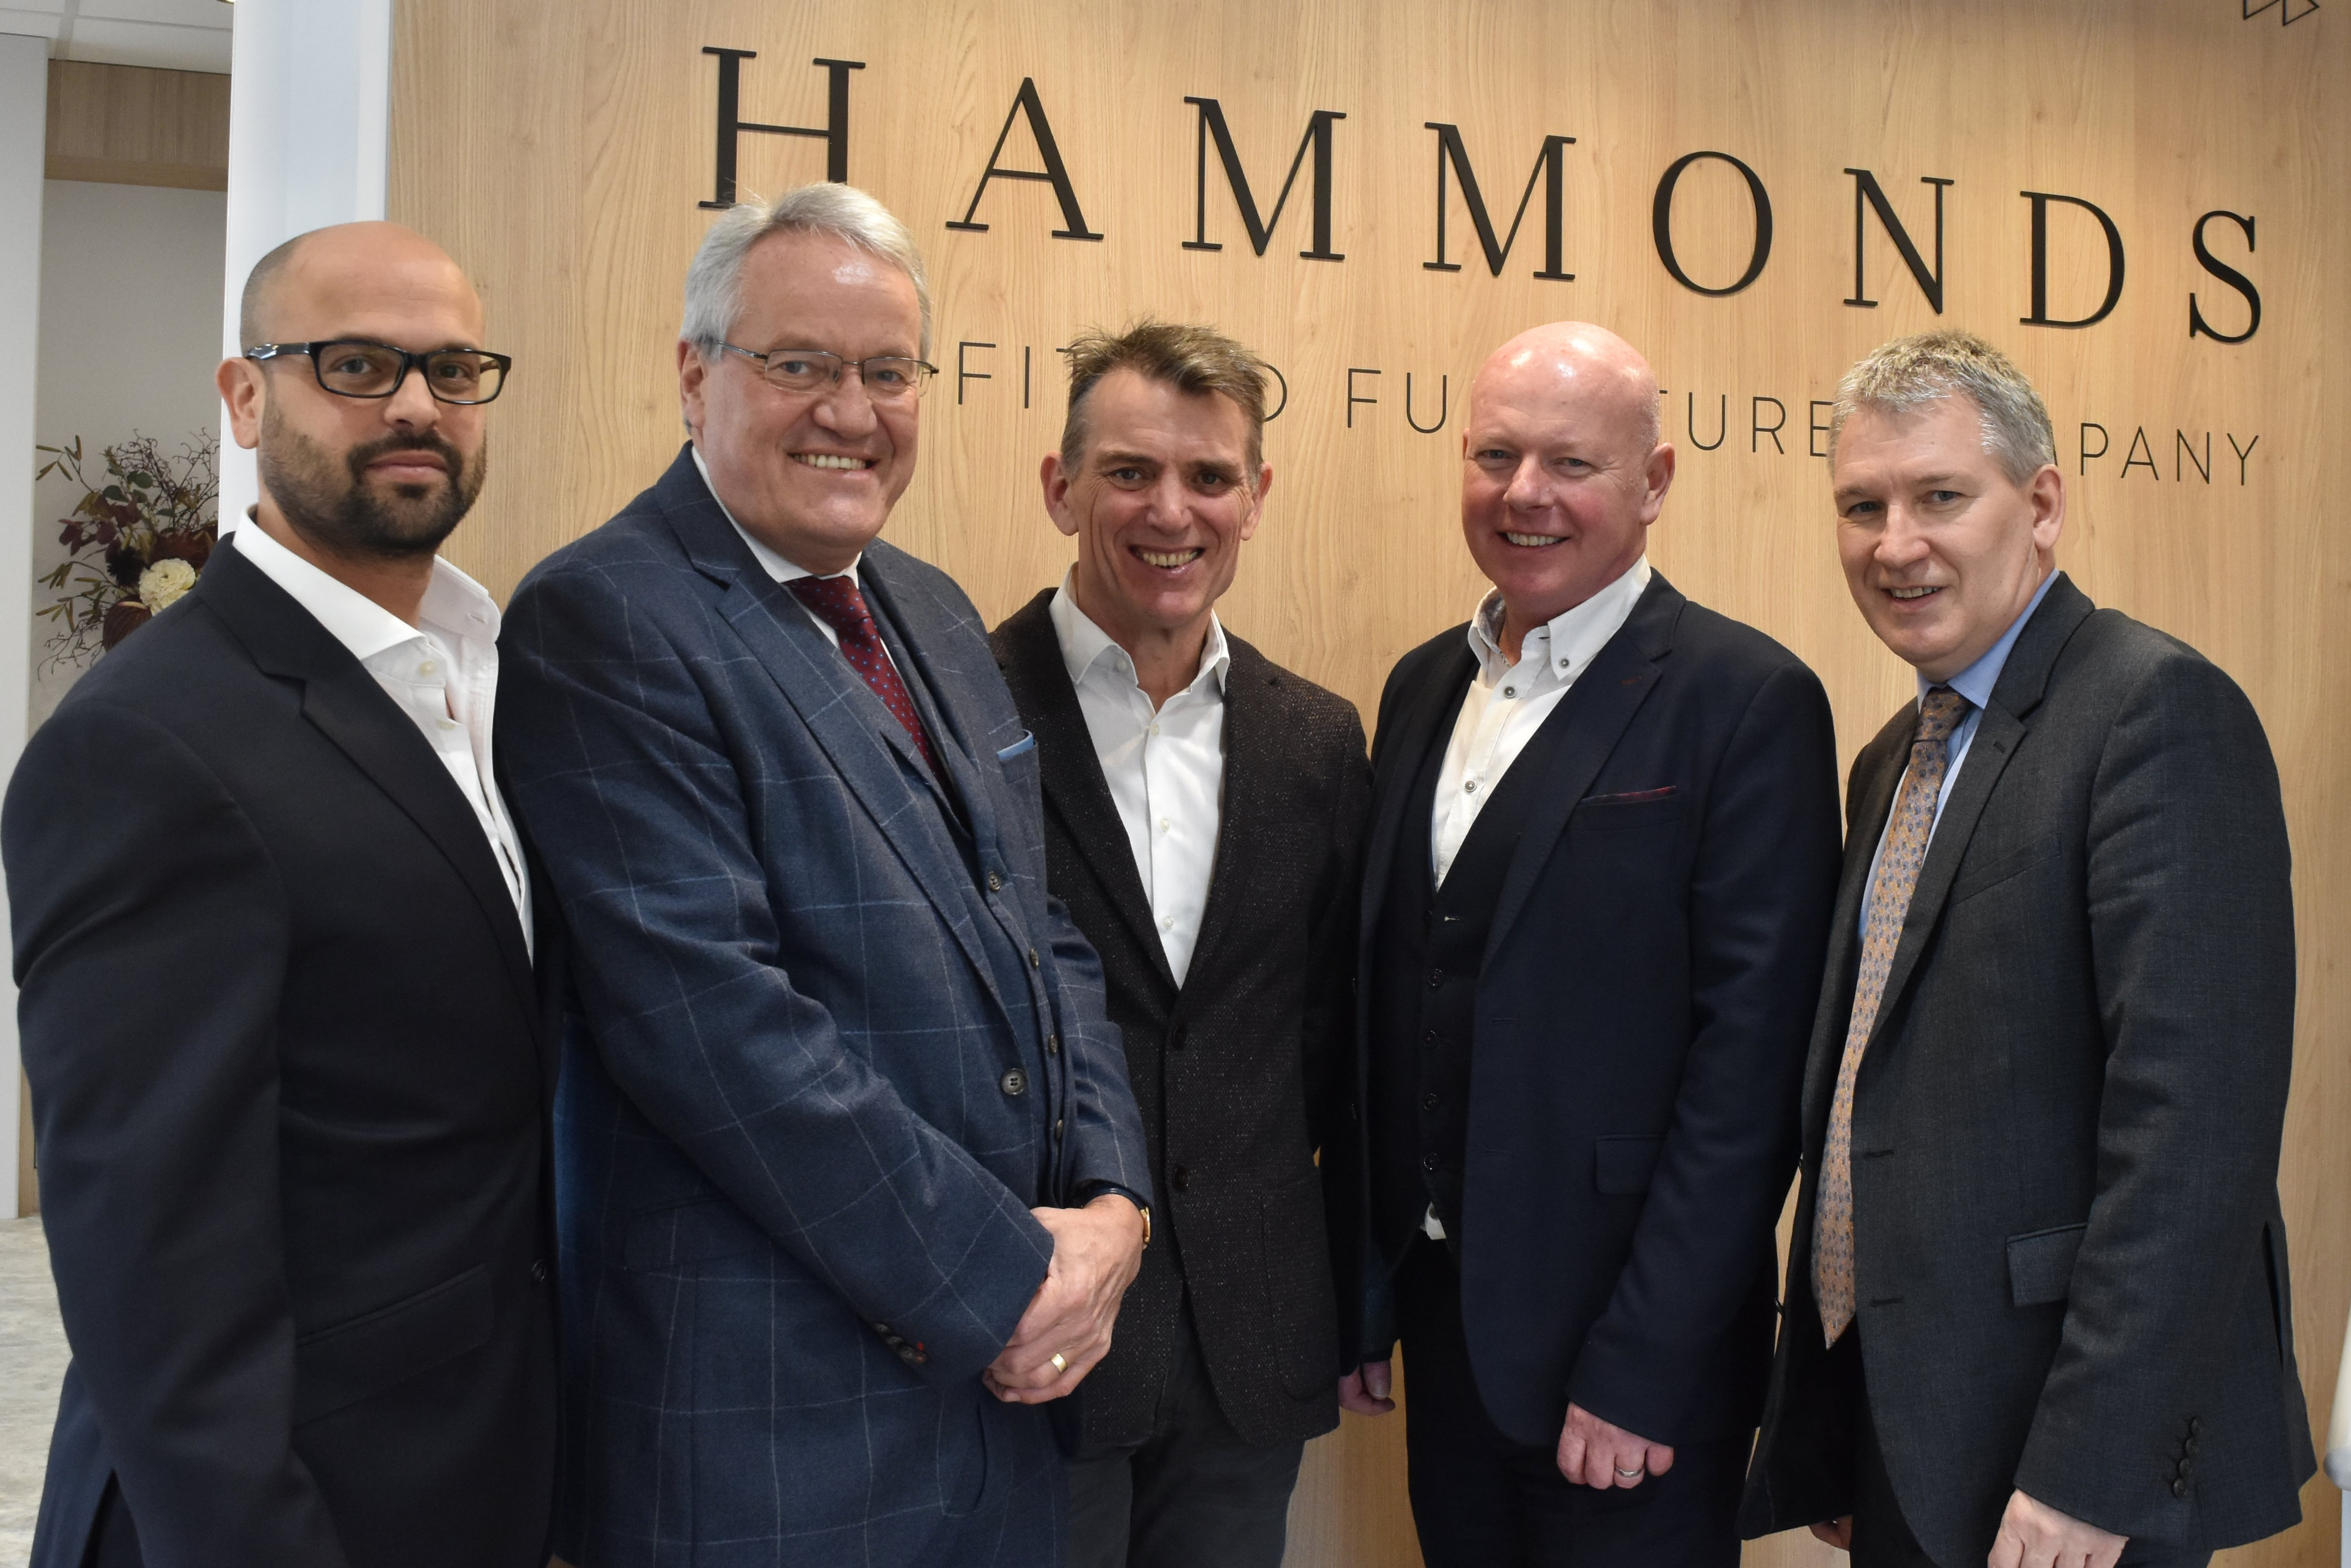 MBO at Midlands-based furniture manufacturer and retailer Hammonds